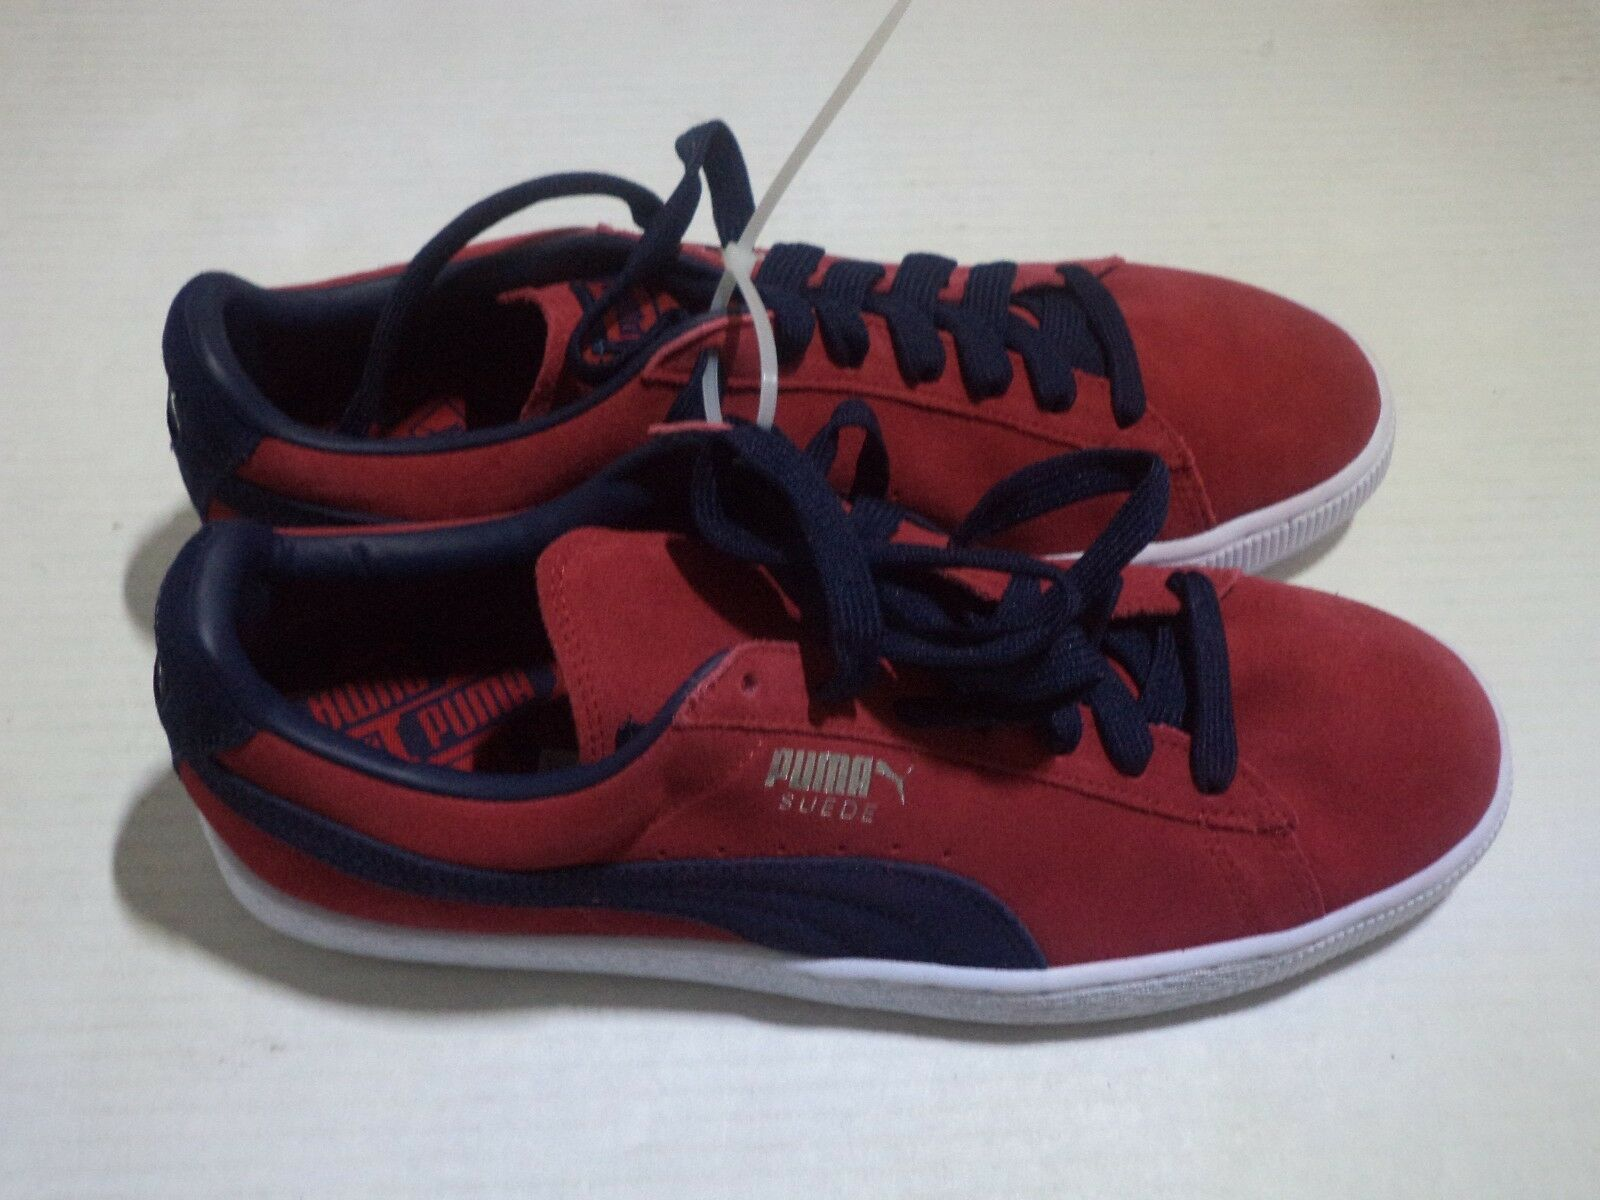 PUMA Men's Suede Classic + Fashion Sneaker 8.5 - 12 color Navy bluee & Cherry Red